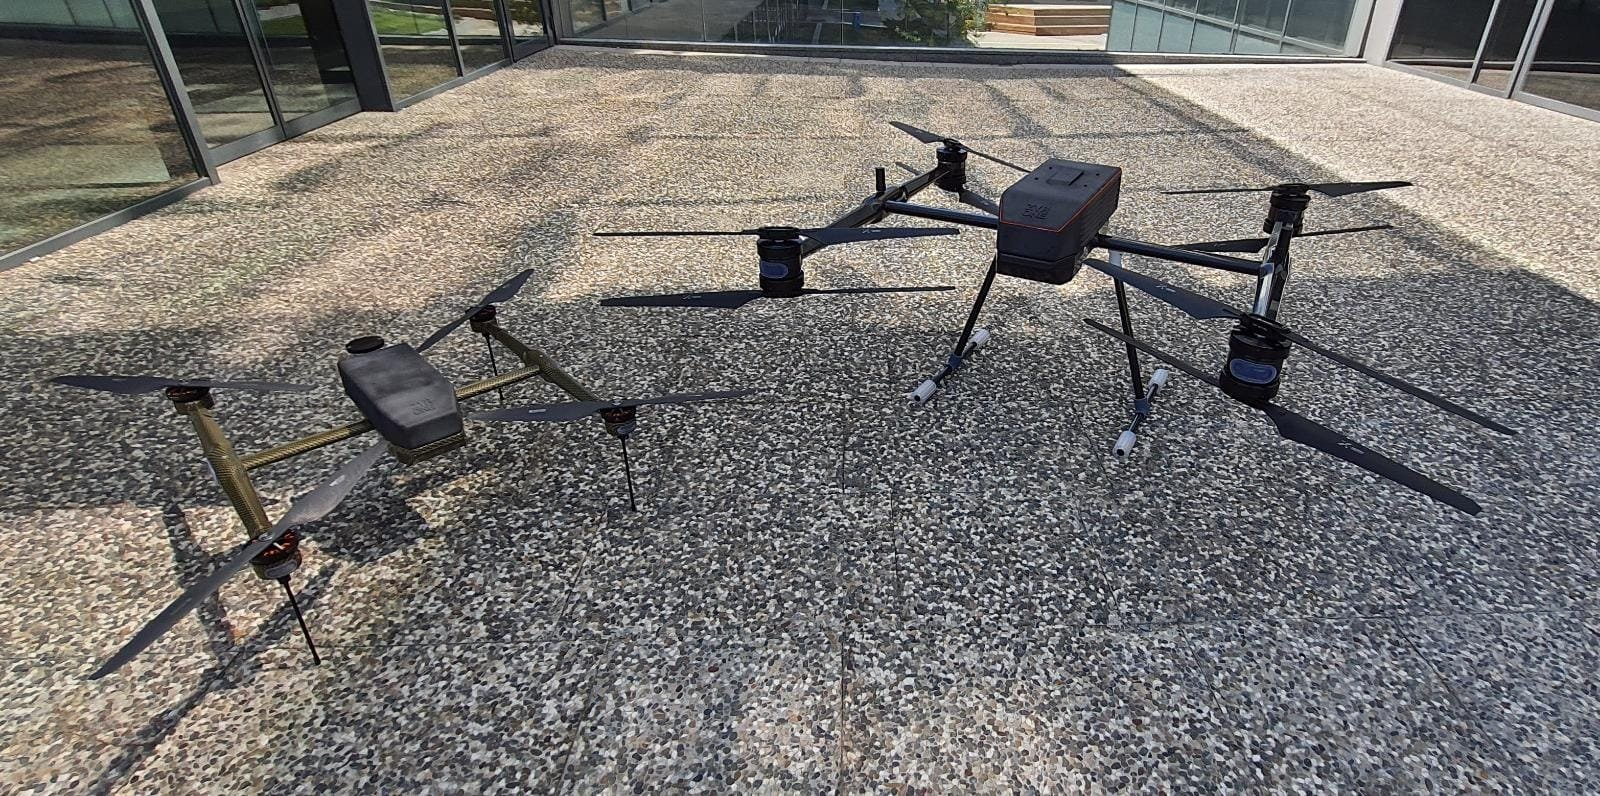 Drones produced by Turkish Zyrone Dynamics are seen in this photo provided on Aug. 16, 2021. (Zyrone Dynamics via AA)